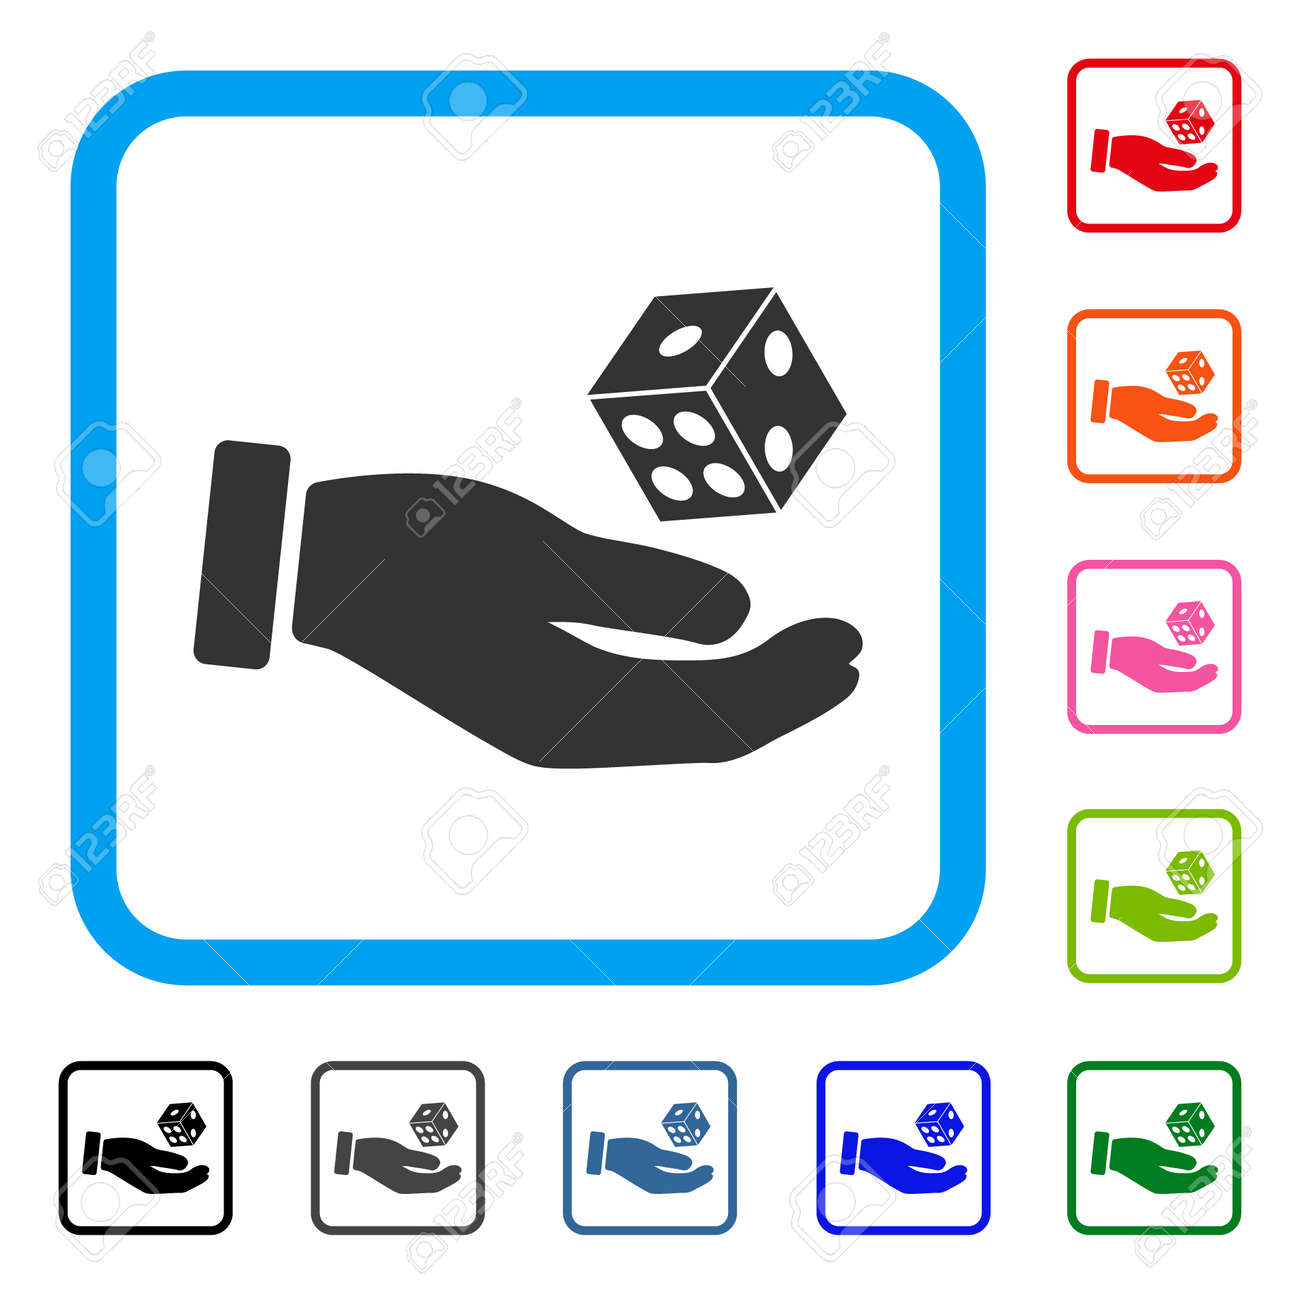 Hand Play Dice Icon Flat Gray Pictogram Symbol In A Blue Rounded